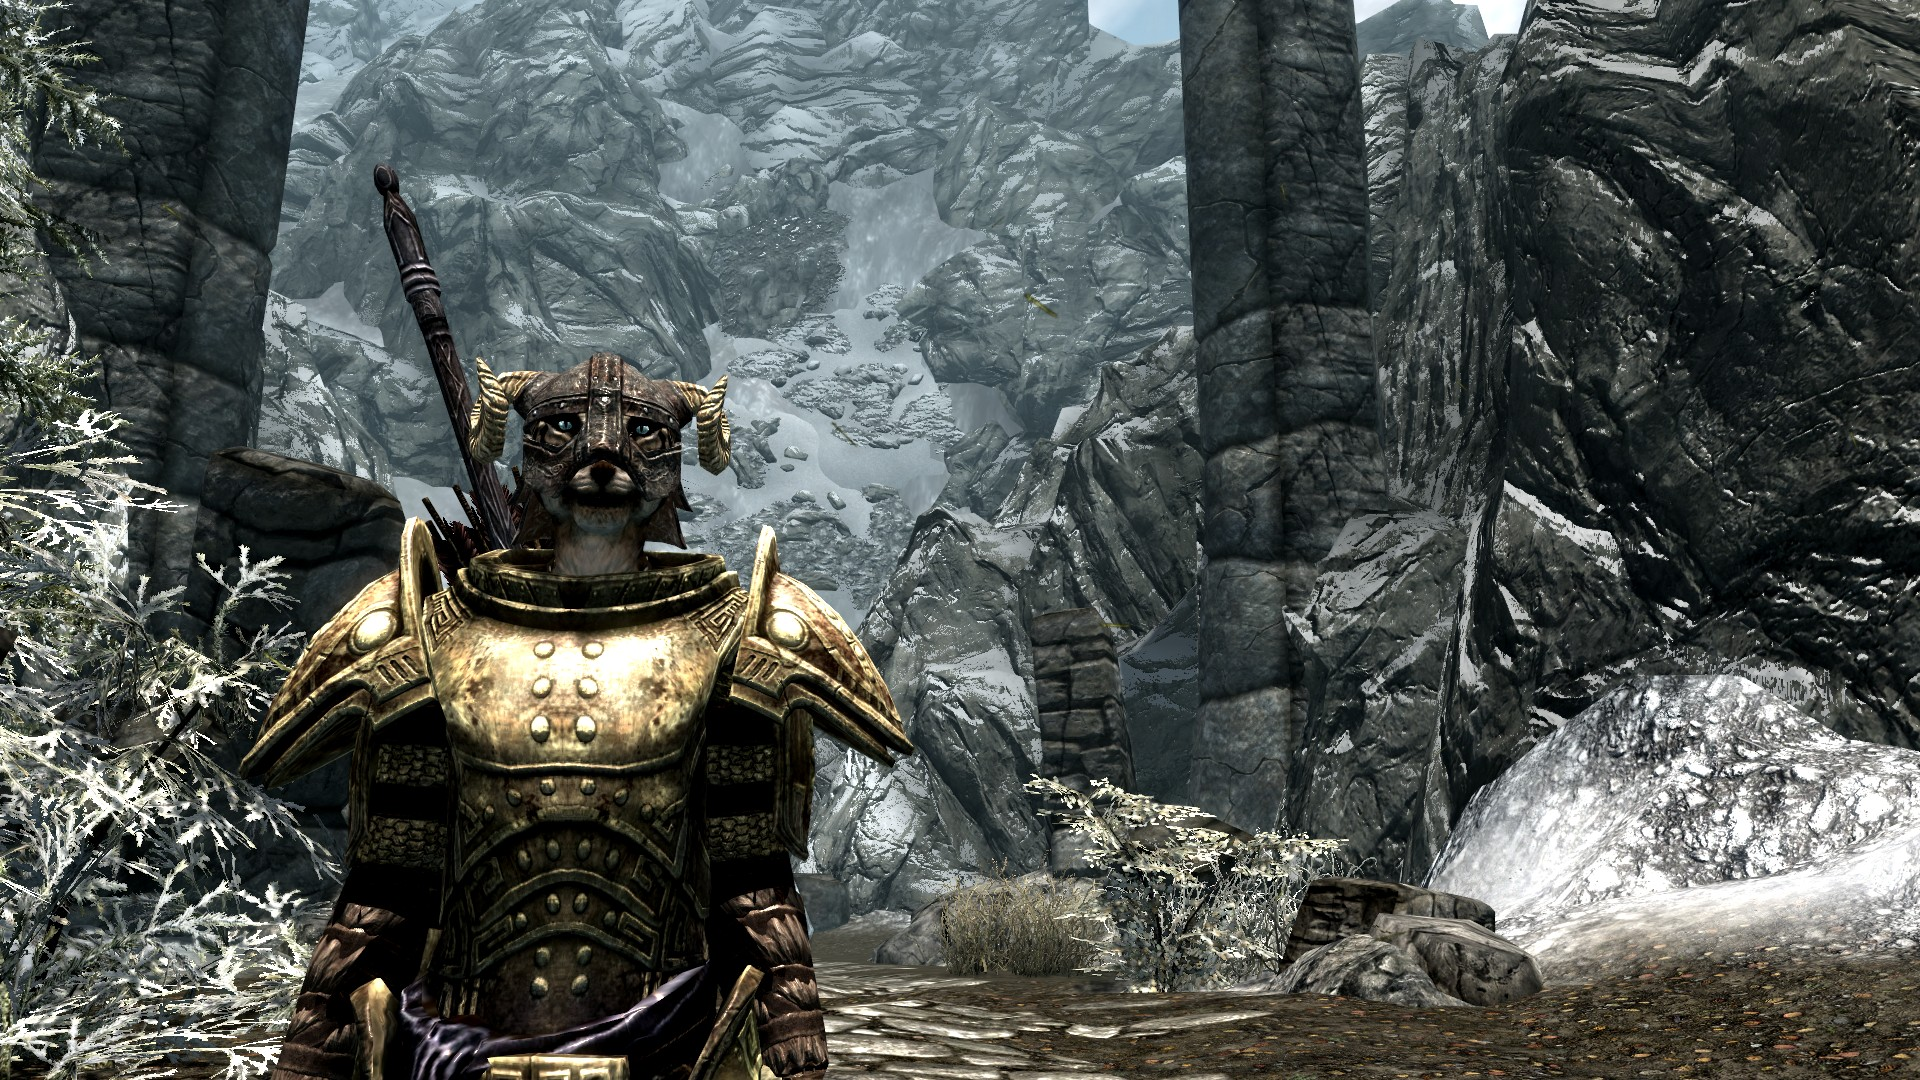 Skyrim: Show us your Dragonborn (and we'll show you ours